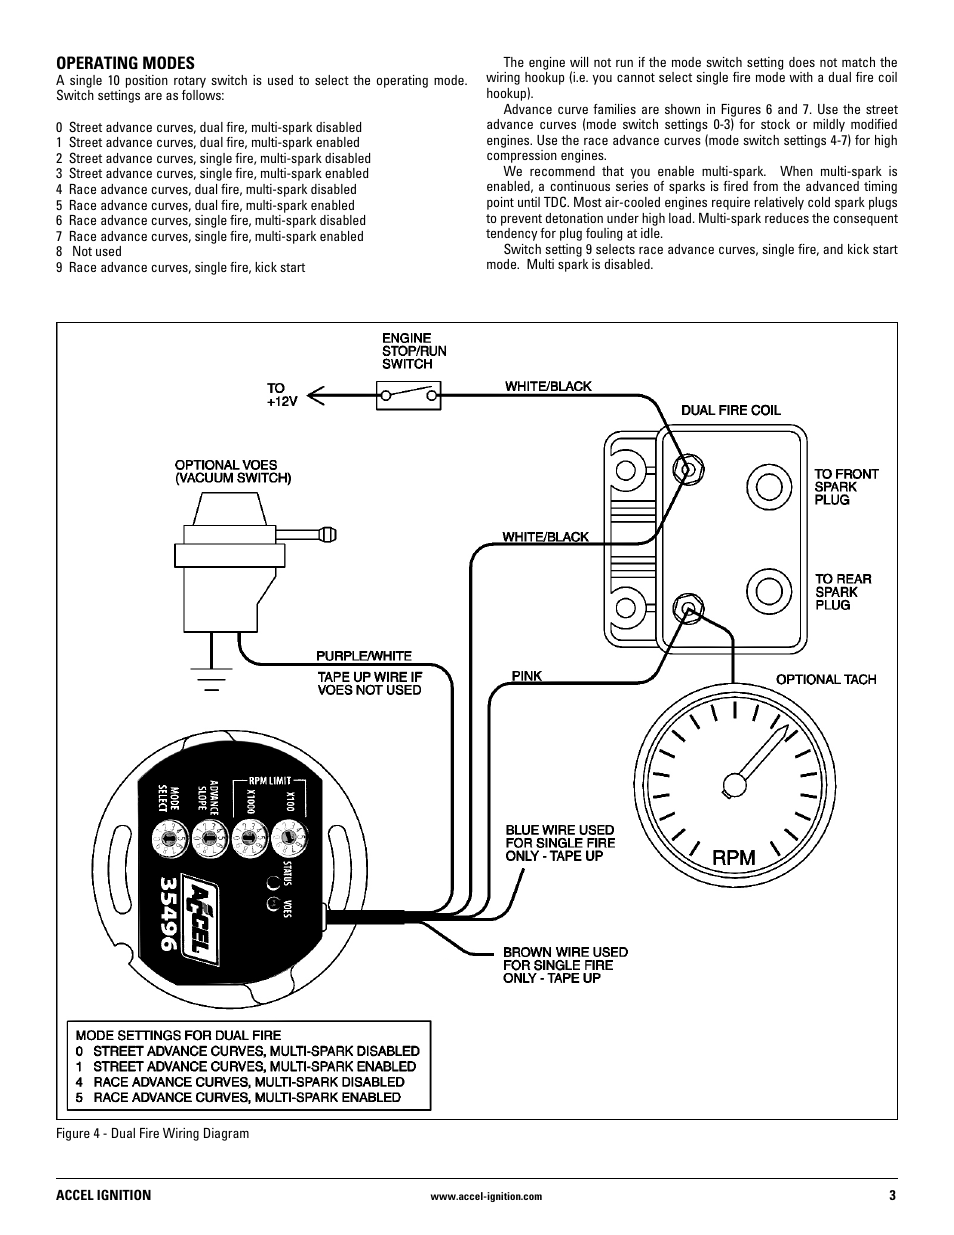 mallory ignition accel ignition 35496 page3?resize\\\\\\\\\\\\\\\=665%2C861 mallory unilite wiring diagram tamahuproject org mallory unilite distributor wiring diagram at bakdesigns.co